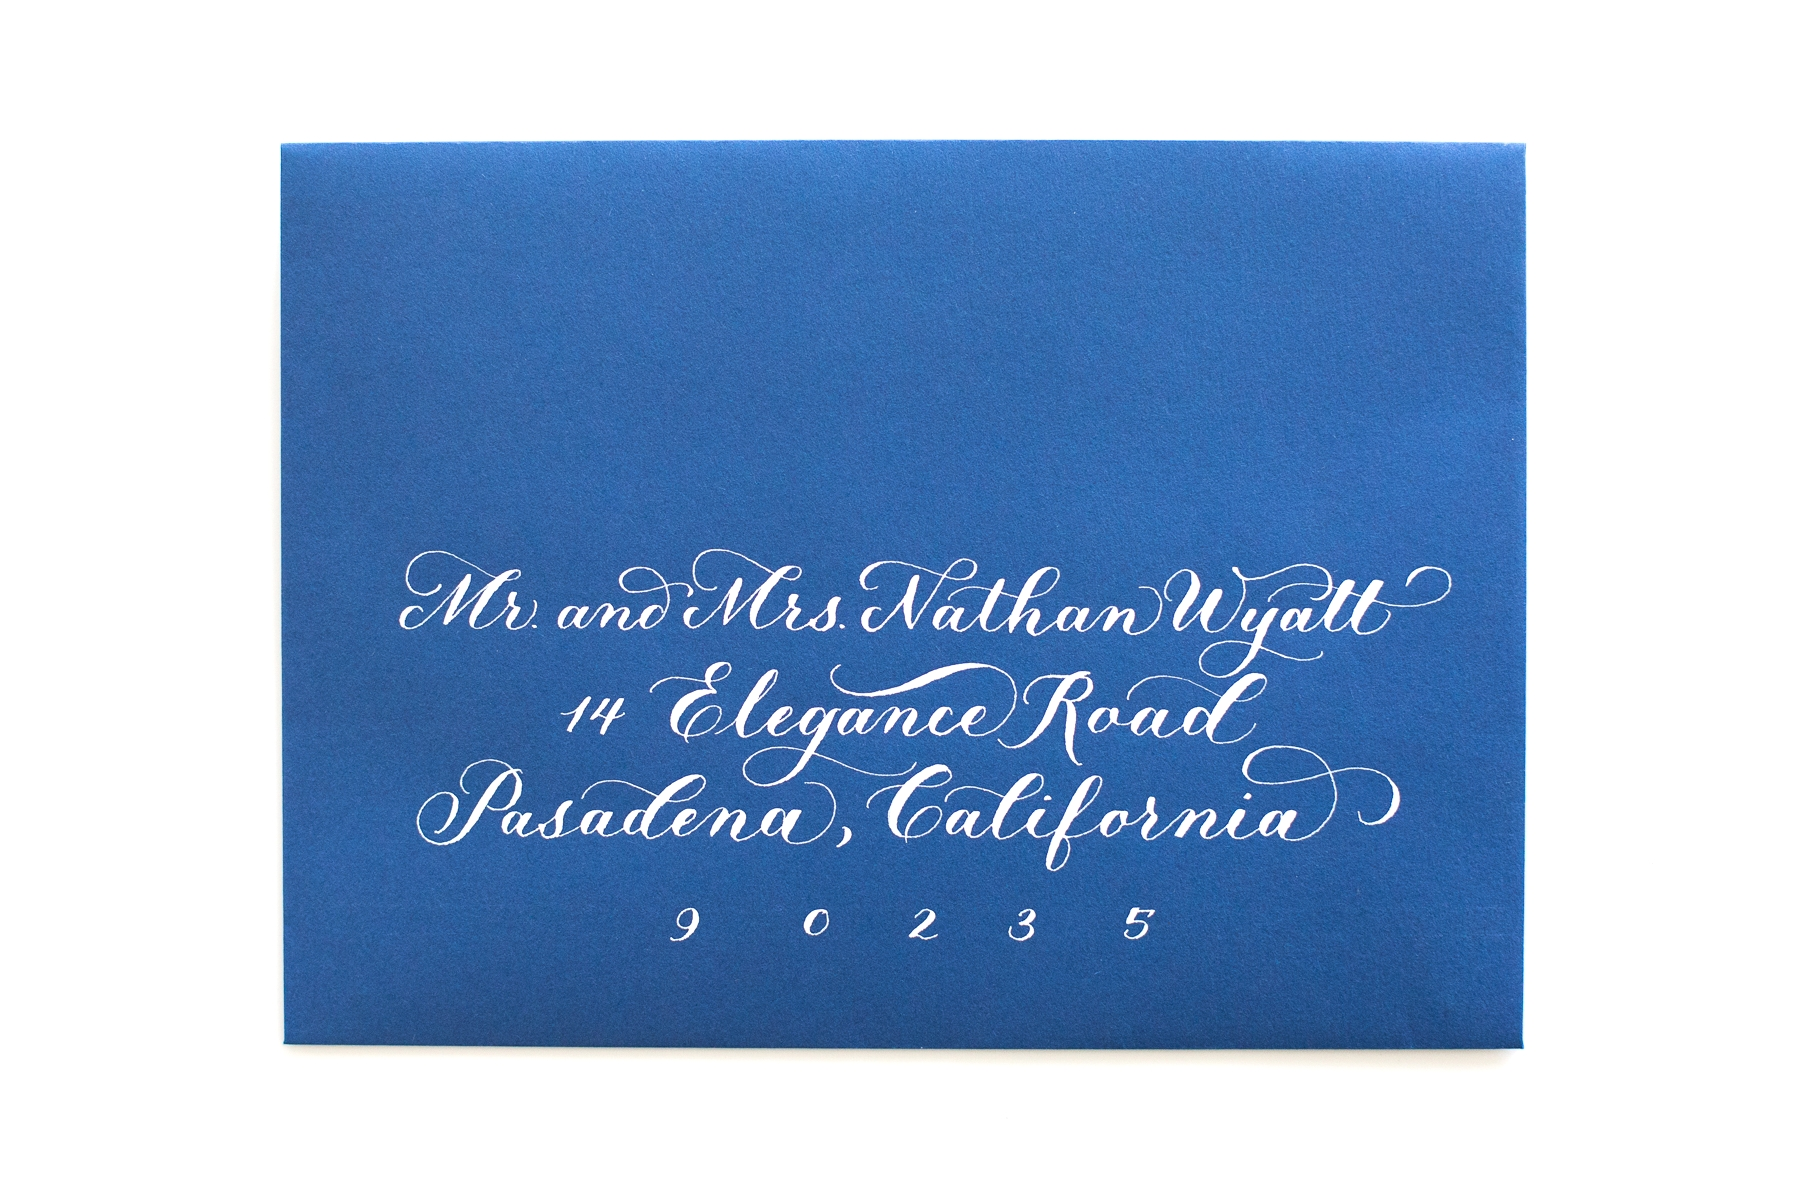 ELEGANCE SCRIPT -   copperplate calligraphy with graceful flourishes